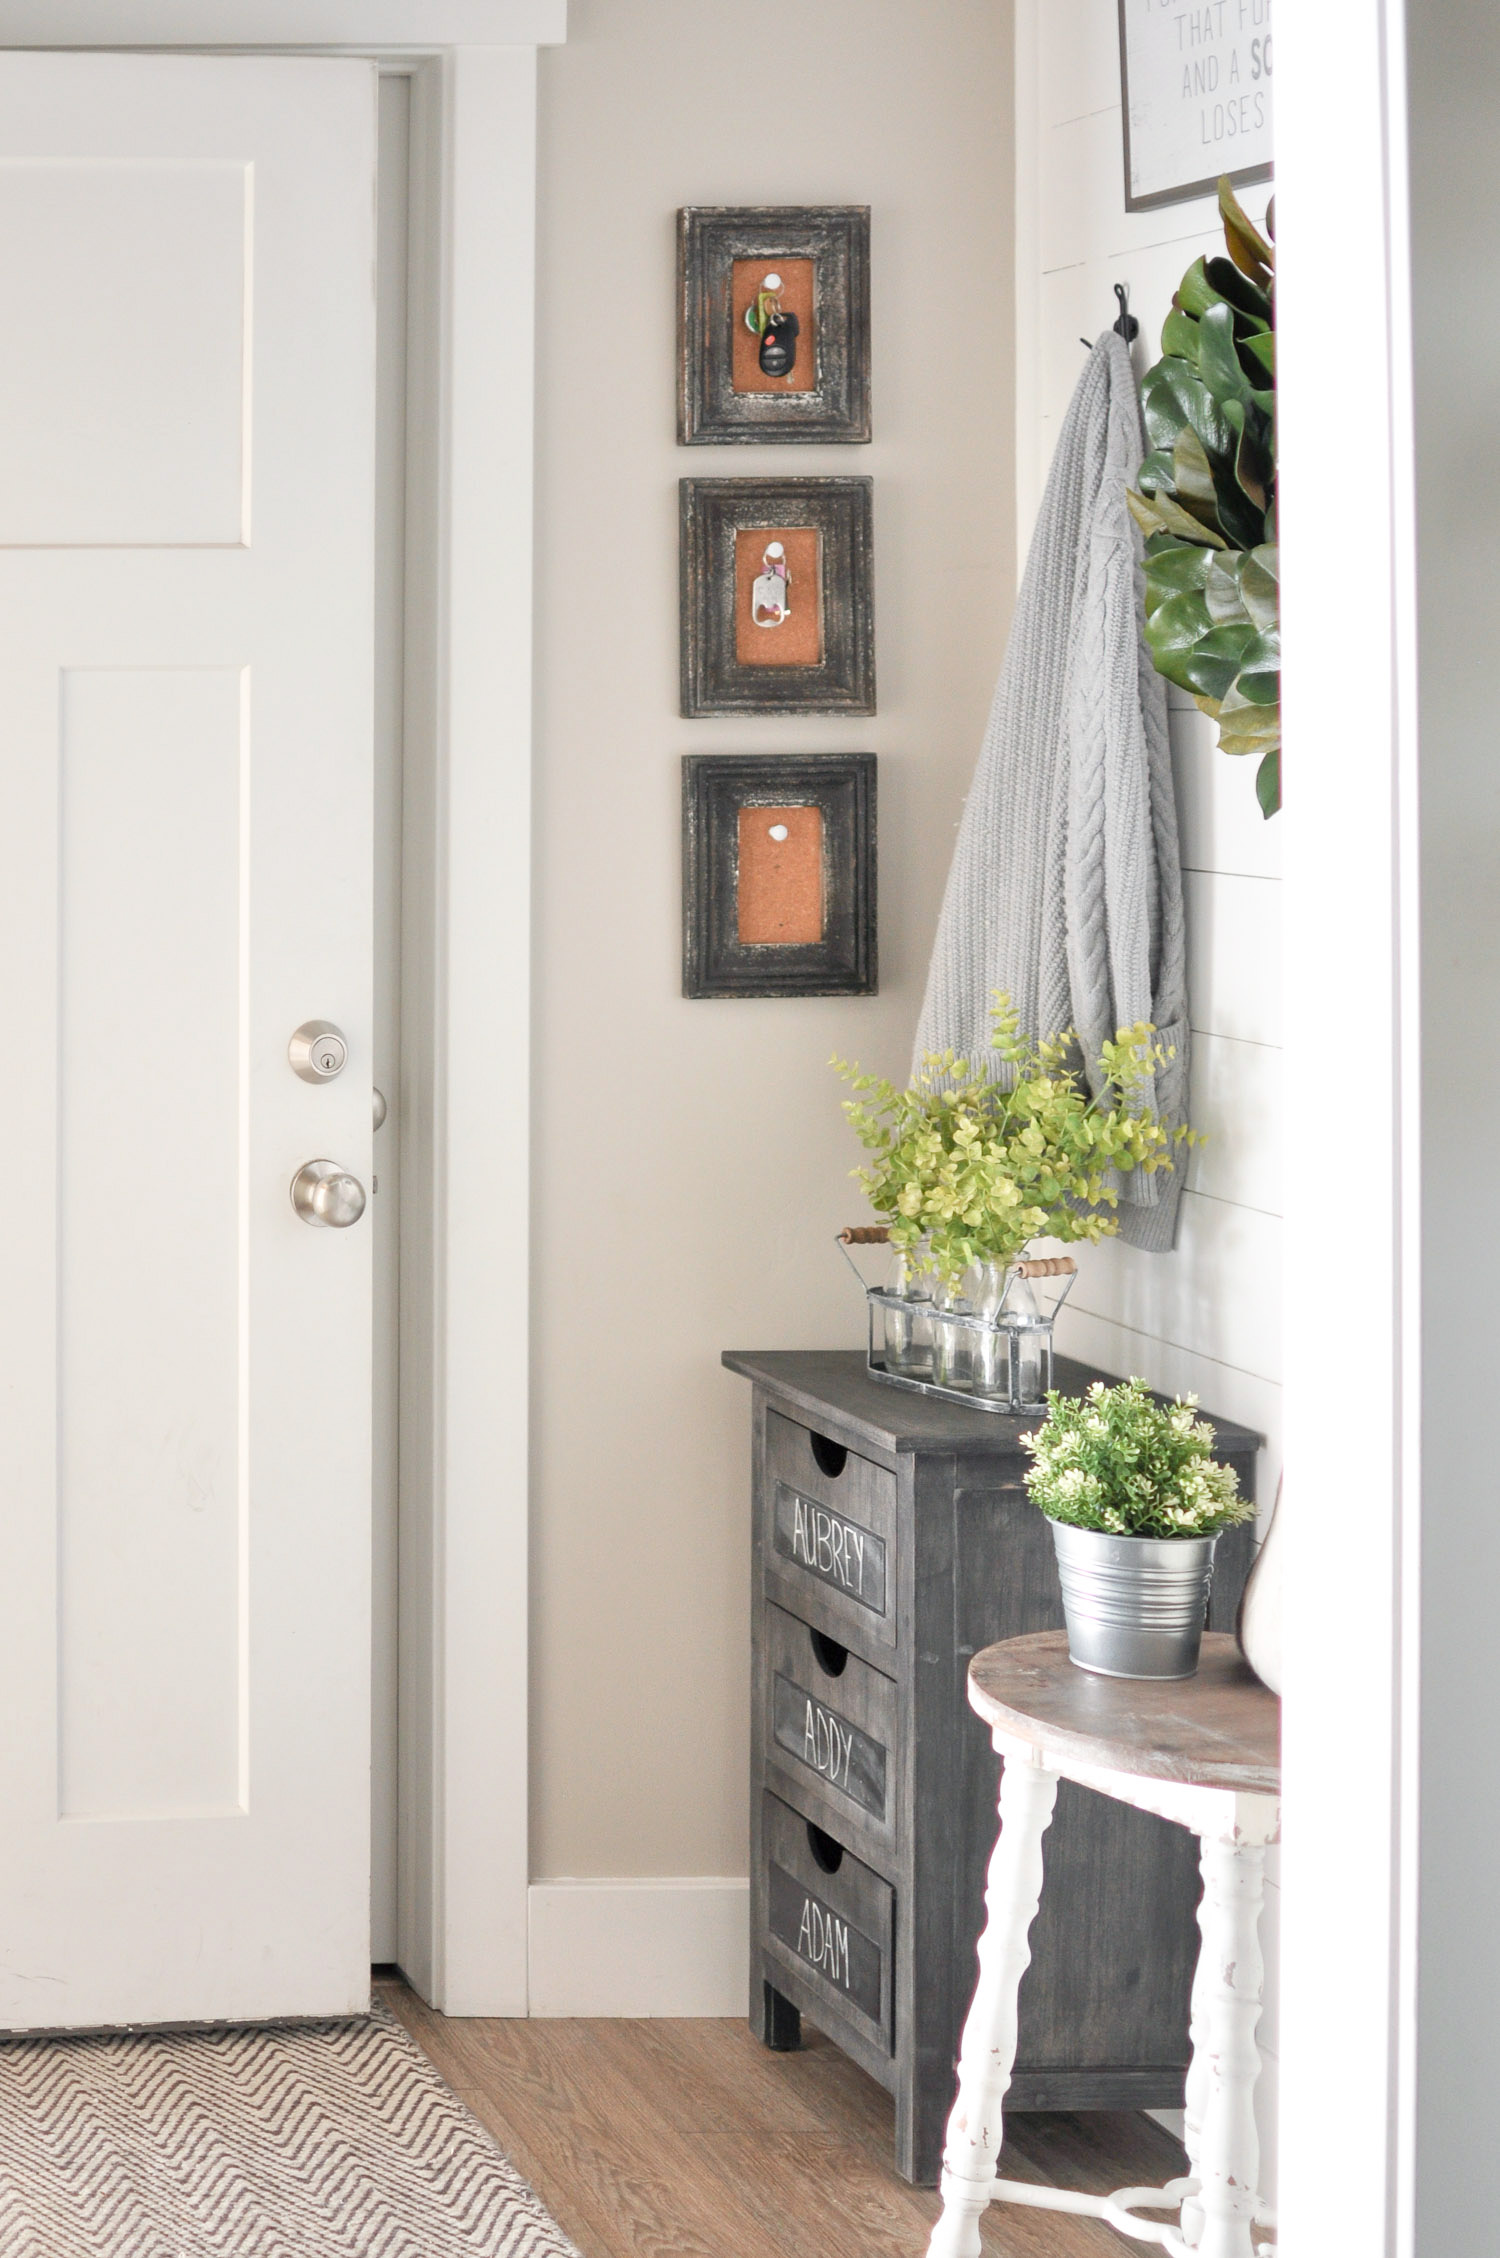 Reallife Mudroom And Entryway Decorating Ideas By Bloggers - Entryway decorating ideas for small spaces